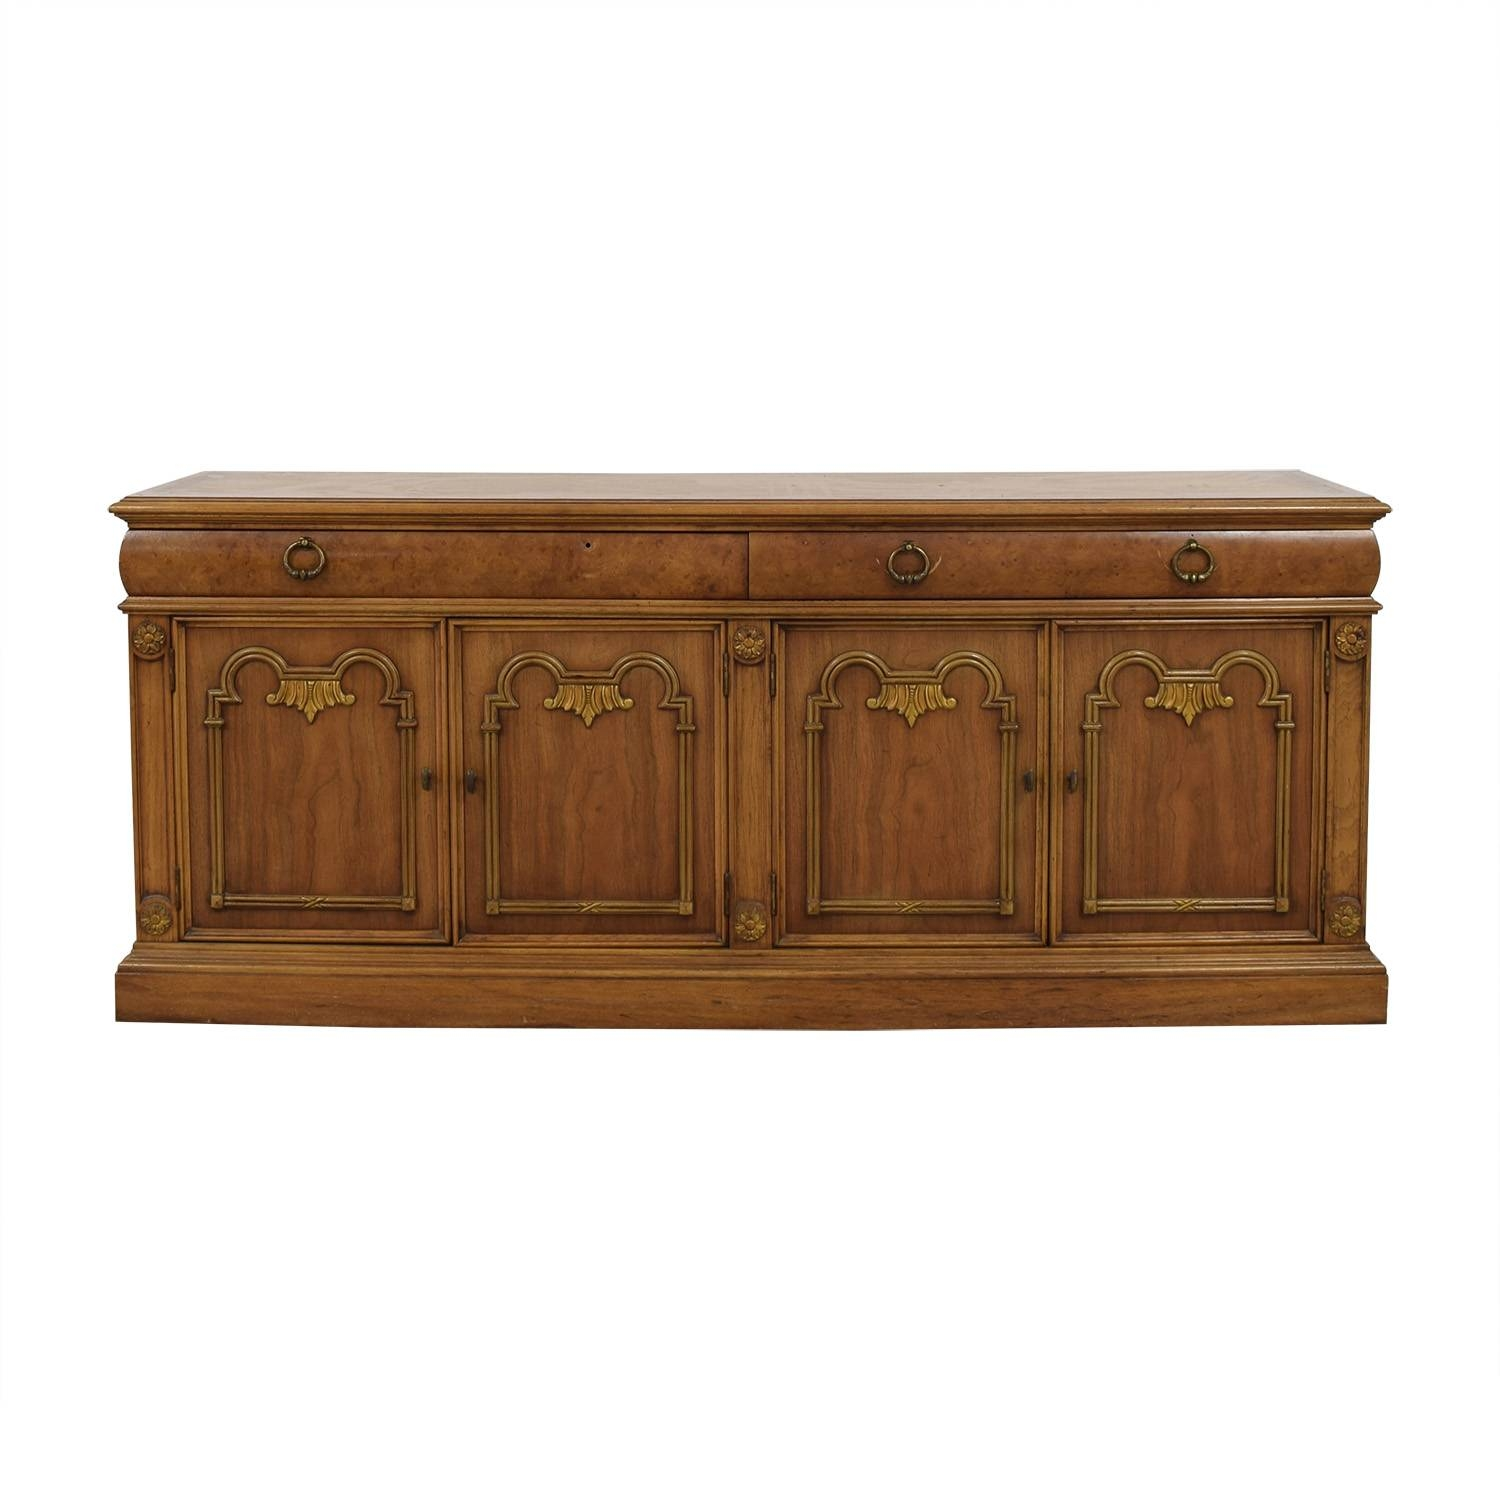 79% Off - Thomasville Thomasville Buffet Storage Cabinet / Storage intended for Thomasville Sideboards (Image 1 of 15)